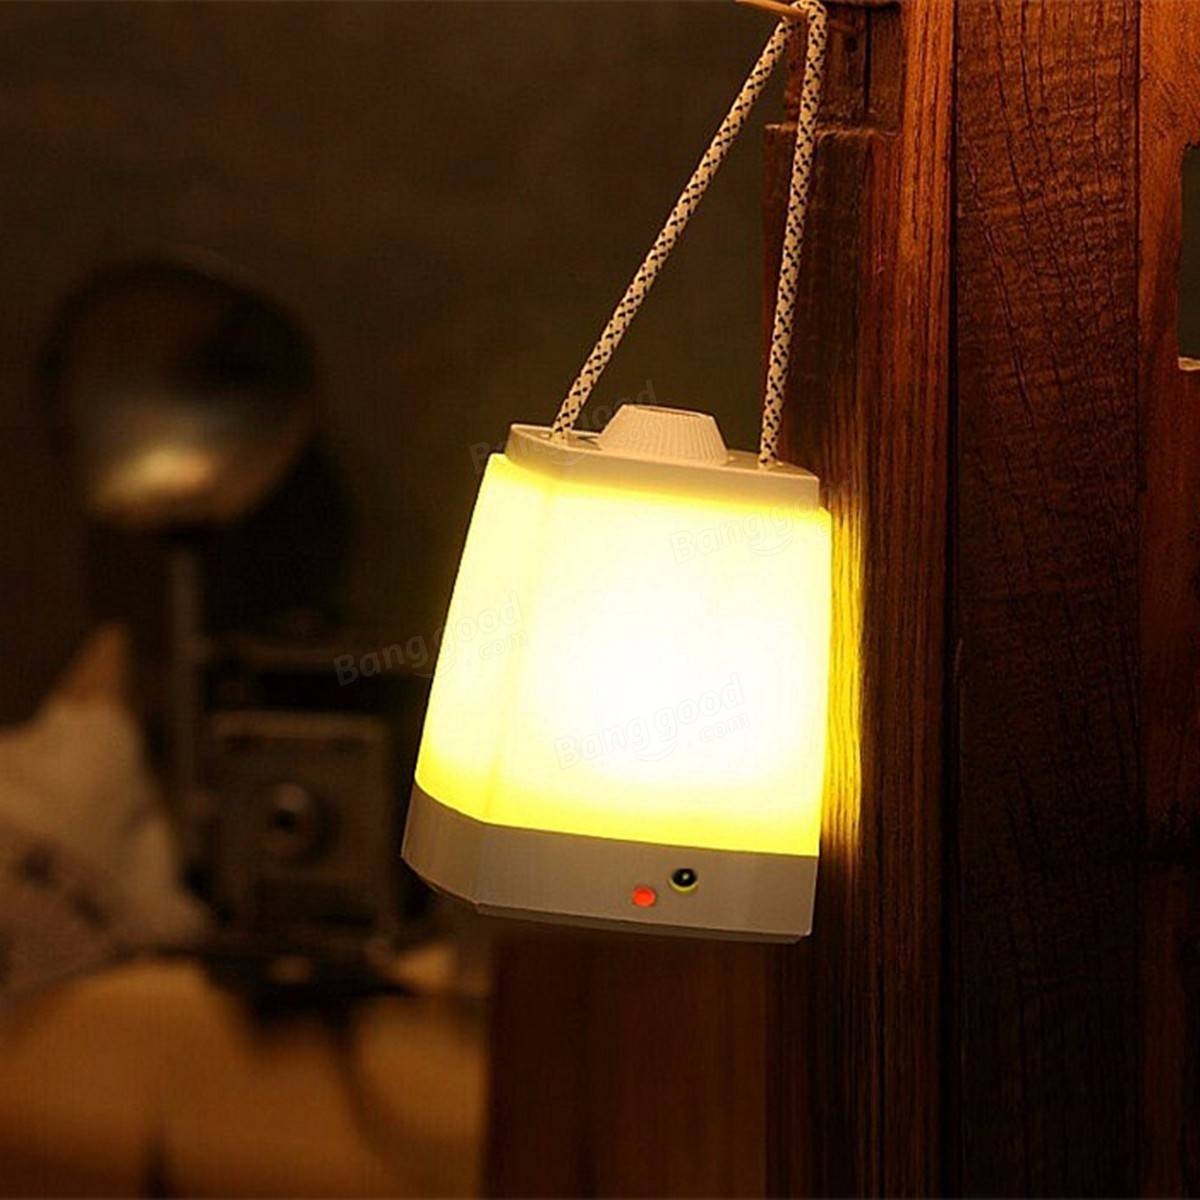 Rechargeable Night Lamp Rechargeable Dimmer Led Night Light Hanging Lamp Carry